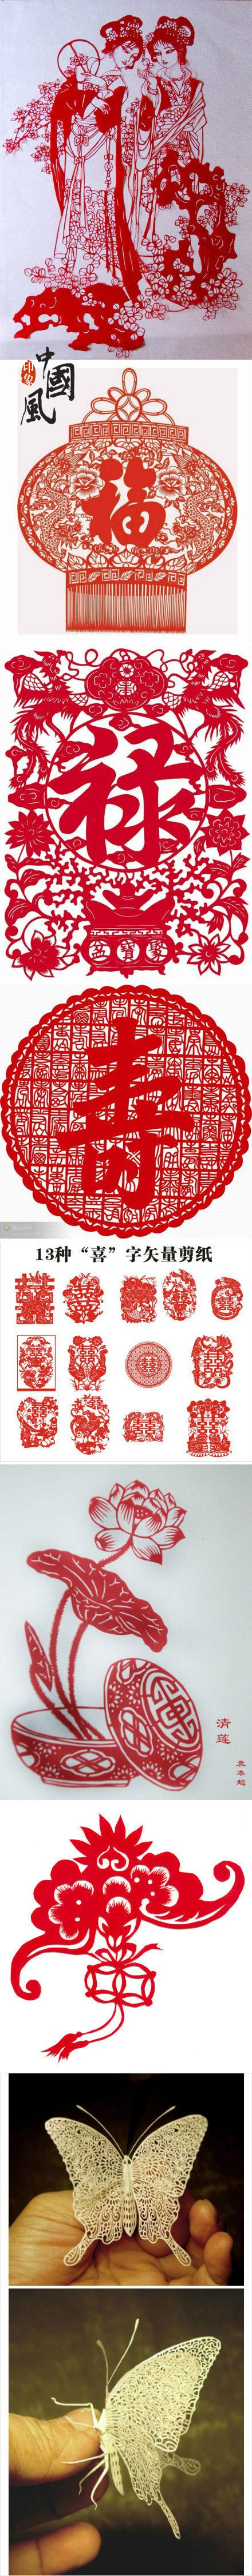 128 best chinese paper cutting images on pinterest papercutting